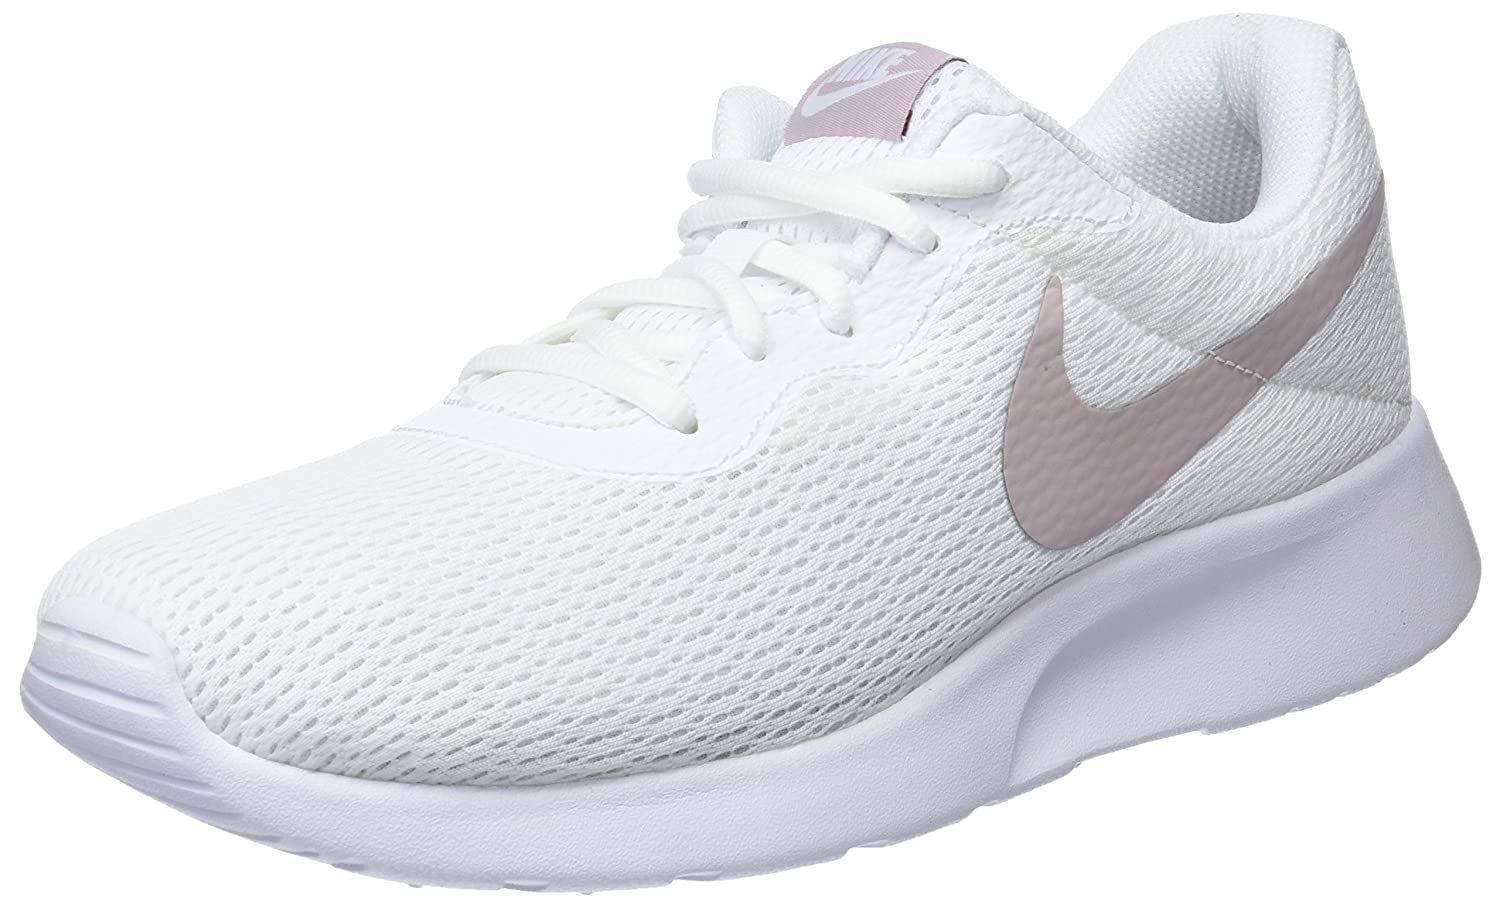 NIKE 11 Women's Tanjun Running Shoes B07BZB8513 11 NIKE B(M) US|White/Metallic Silver/Pure Platinum 366a11